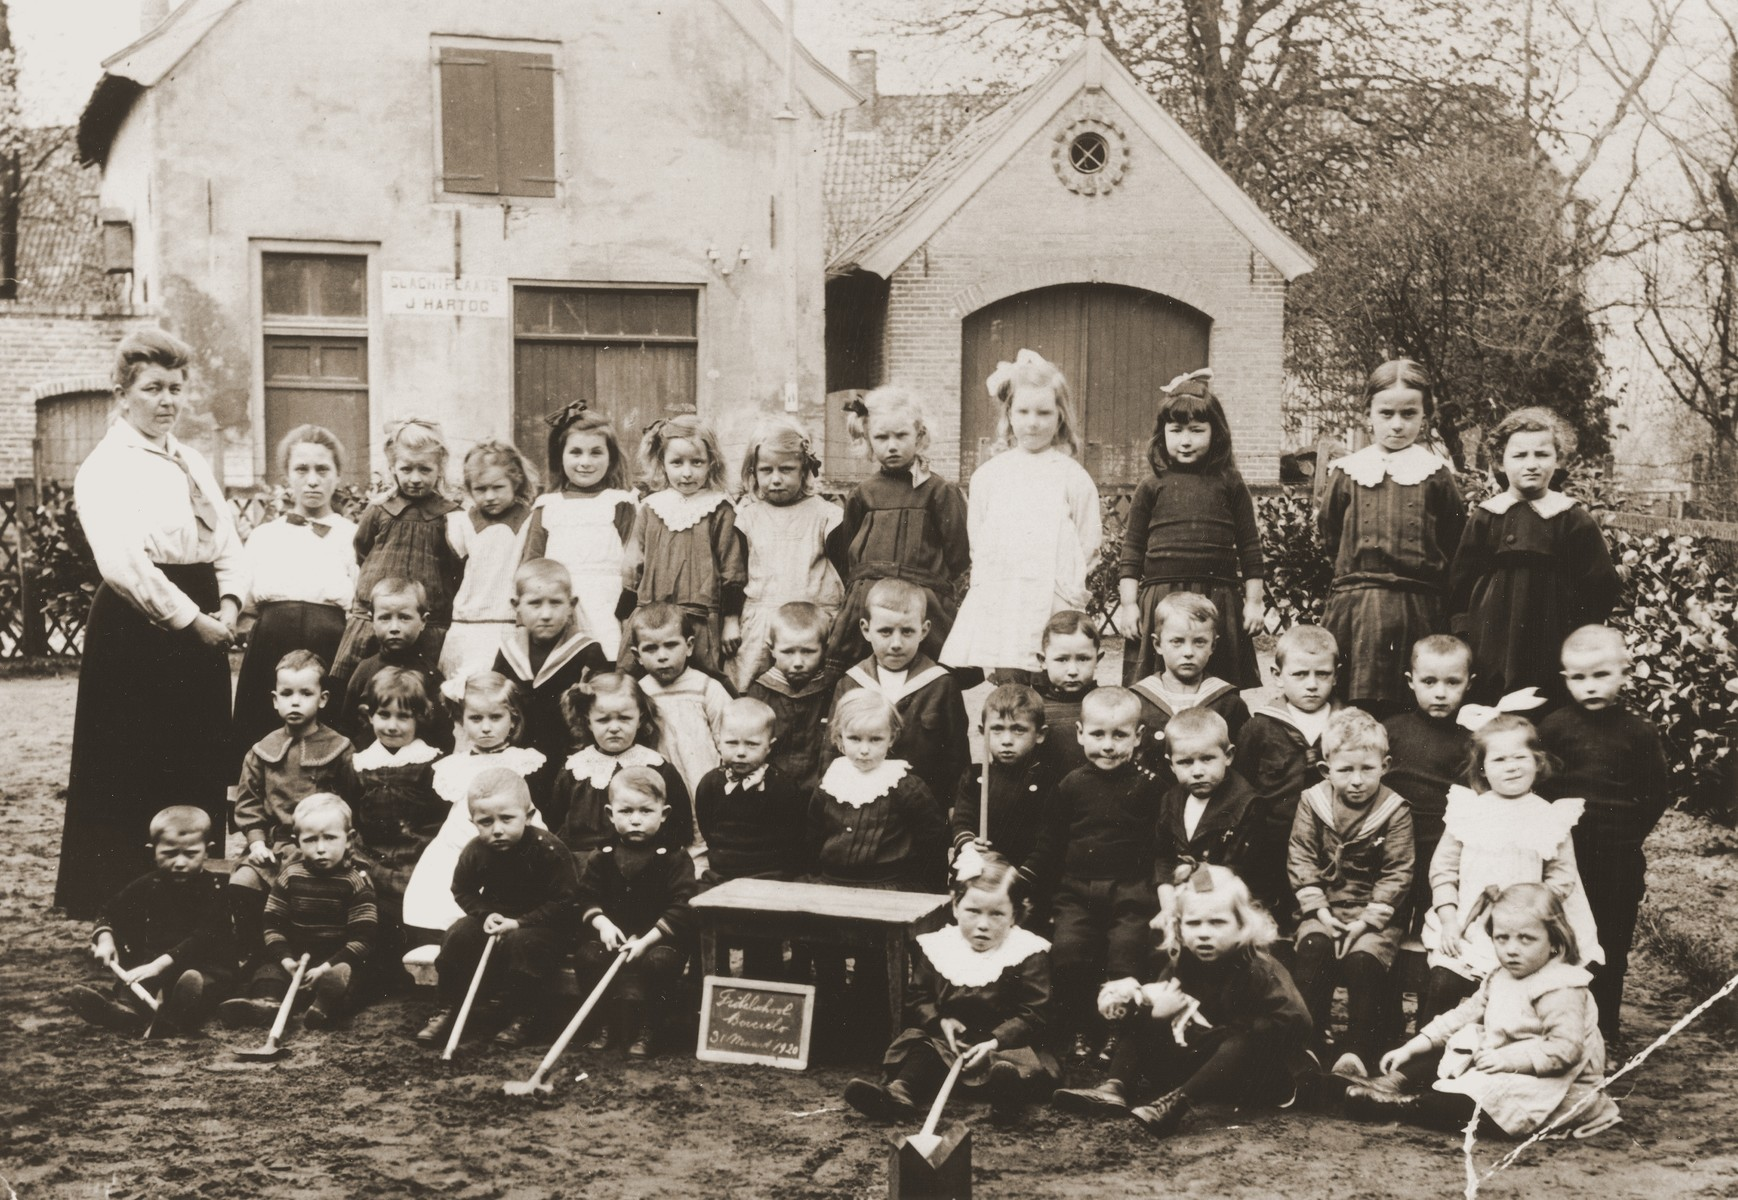 Class portrait of Dutch preschoolers, taken in front of the slaughterhouse owned by the Dutch Jew, Joseph Hartog.  Among those pictured are: Renee (Sara) Meijer (back row, fifth from the left) and Bettie Meijer (second row from the front, first on the right).